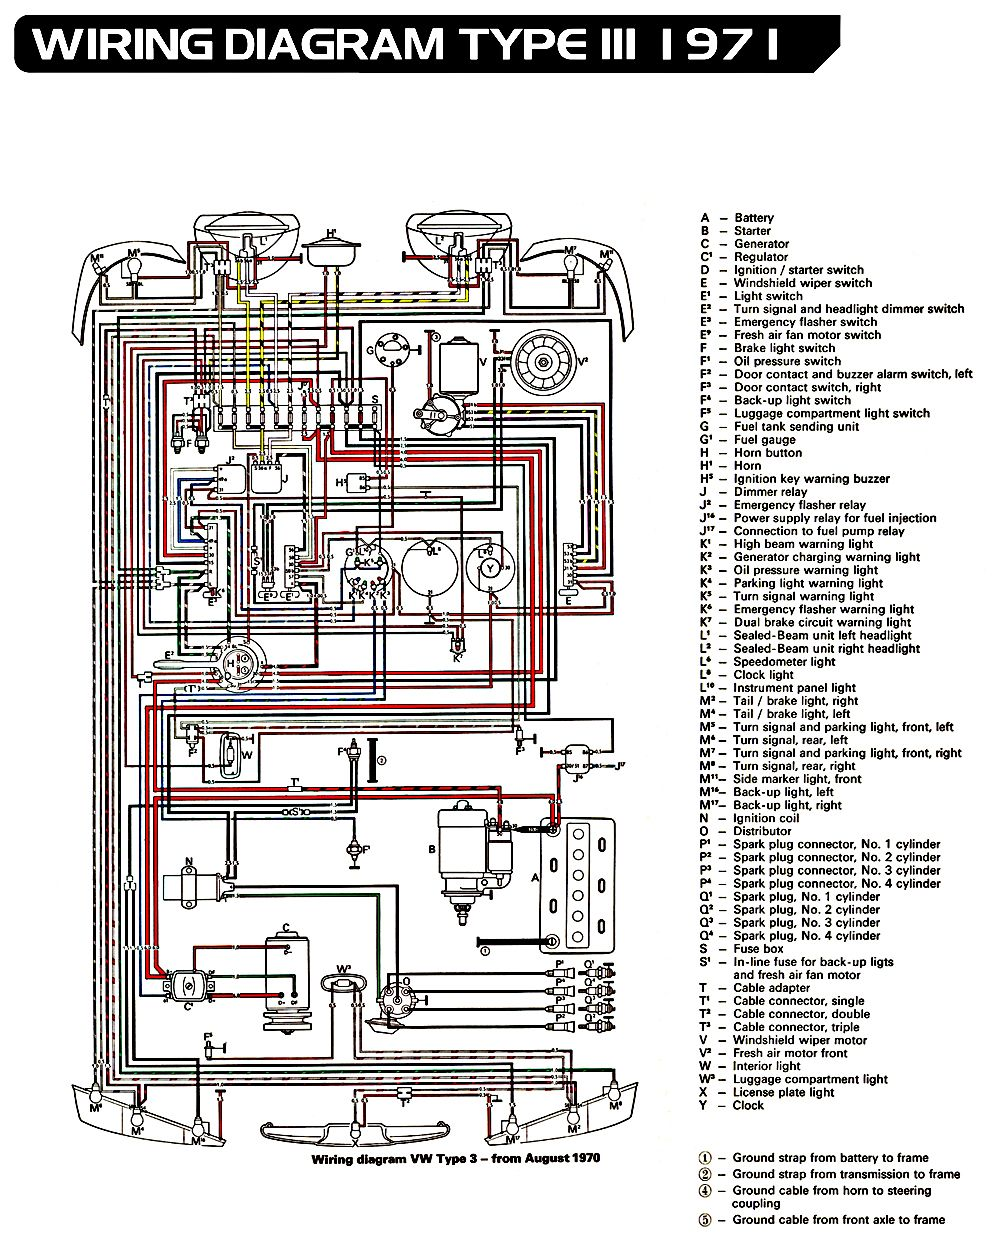 1971 type 3 vw wiring diagram so simple compared to a modern ecu rh pinterest com Volkswagen 2002 Beetle Wiring Diagram 1968 vw type 3 wiring diagram